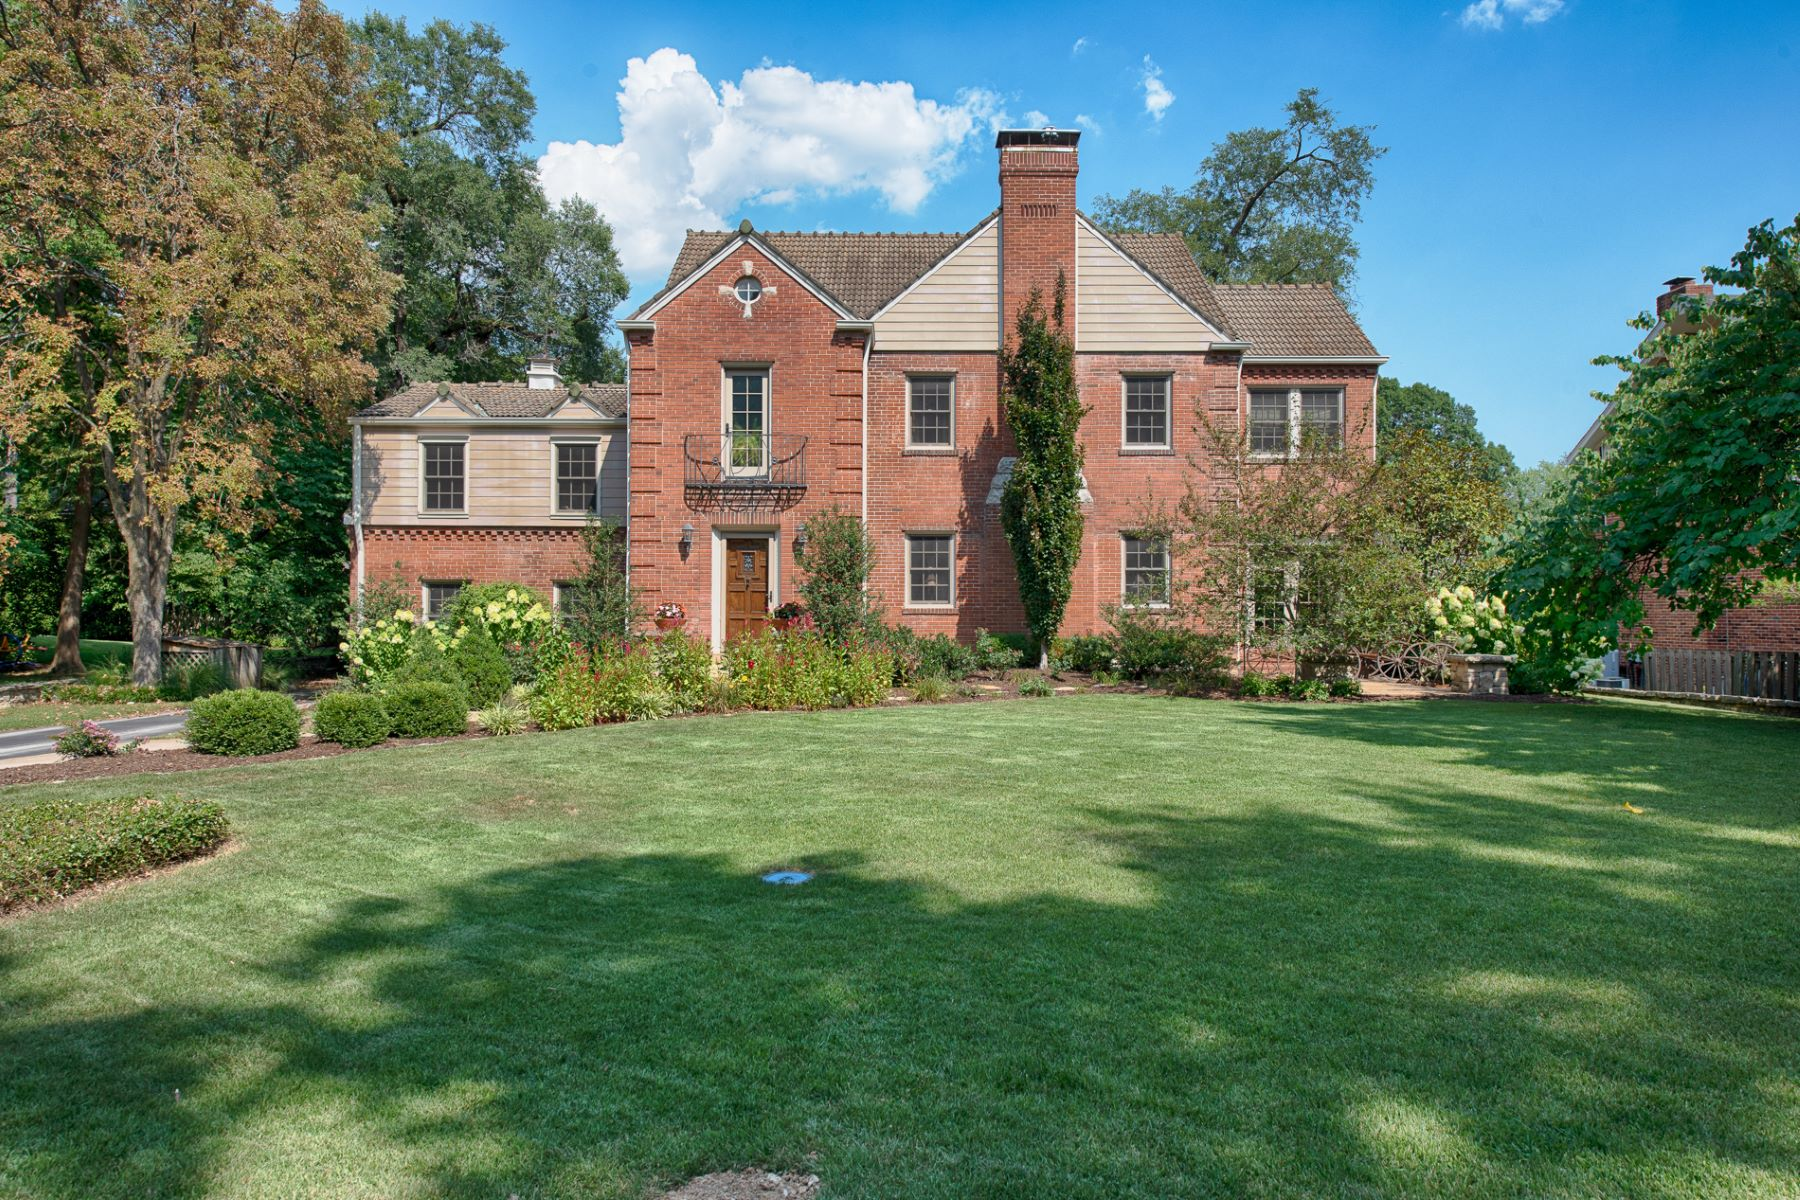 Single Family Home for Sale at Charming Spanish Tudor 12 Granada Way Ladue, Missouri 63124 United States